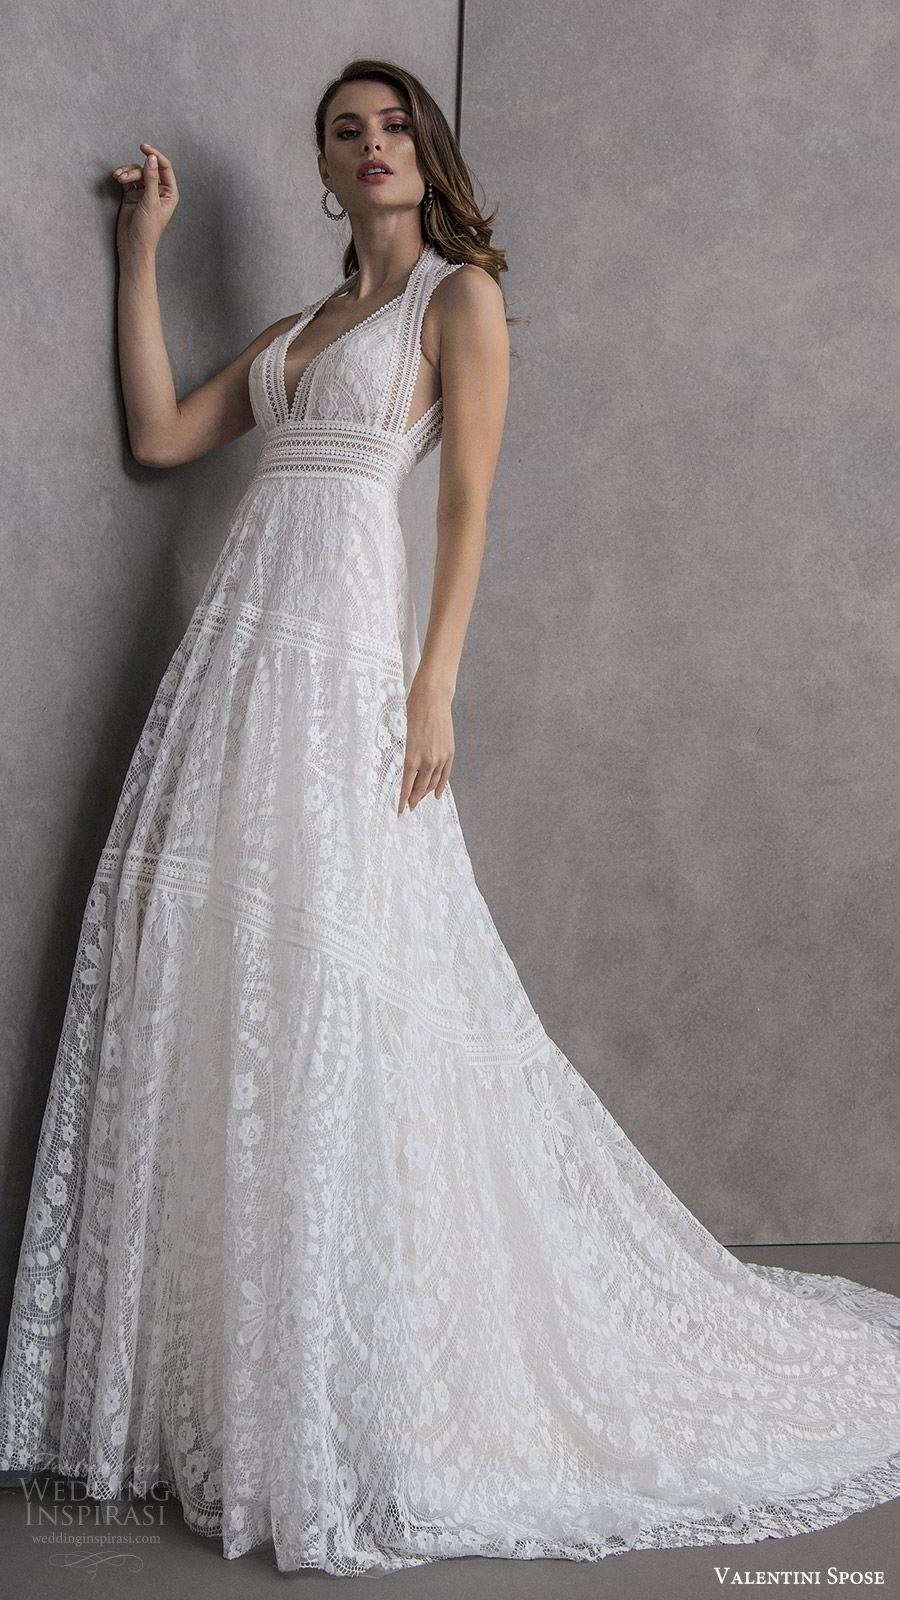 valentini spose spring 2020 bridal sleeveless halter neckline deep v neck fully embellished lace a line wedding dress (12) romantic boho chic chapel train keyhole back mv